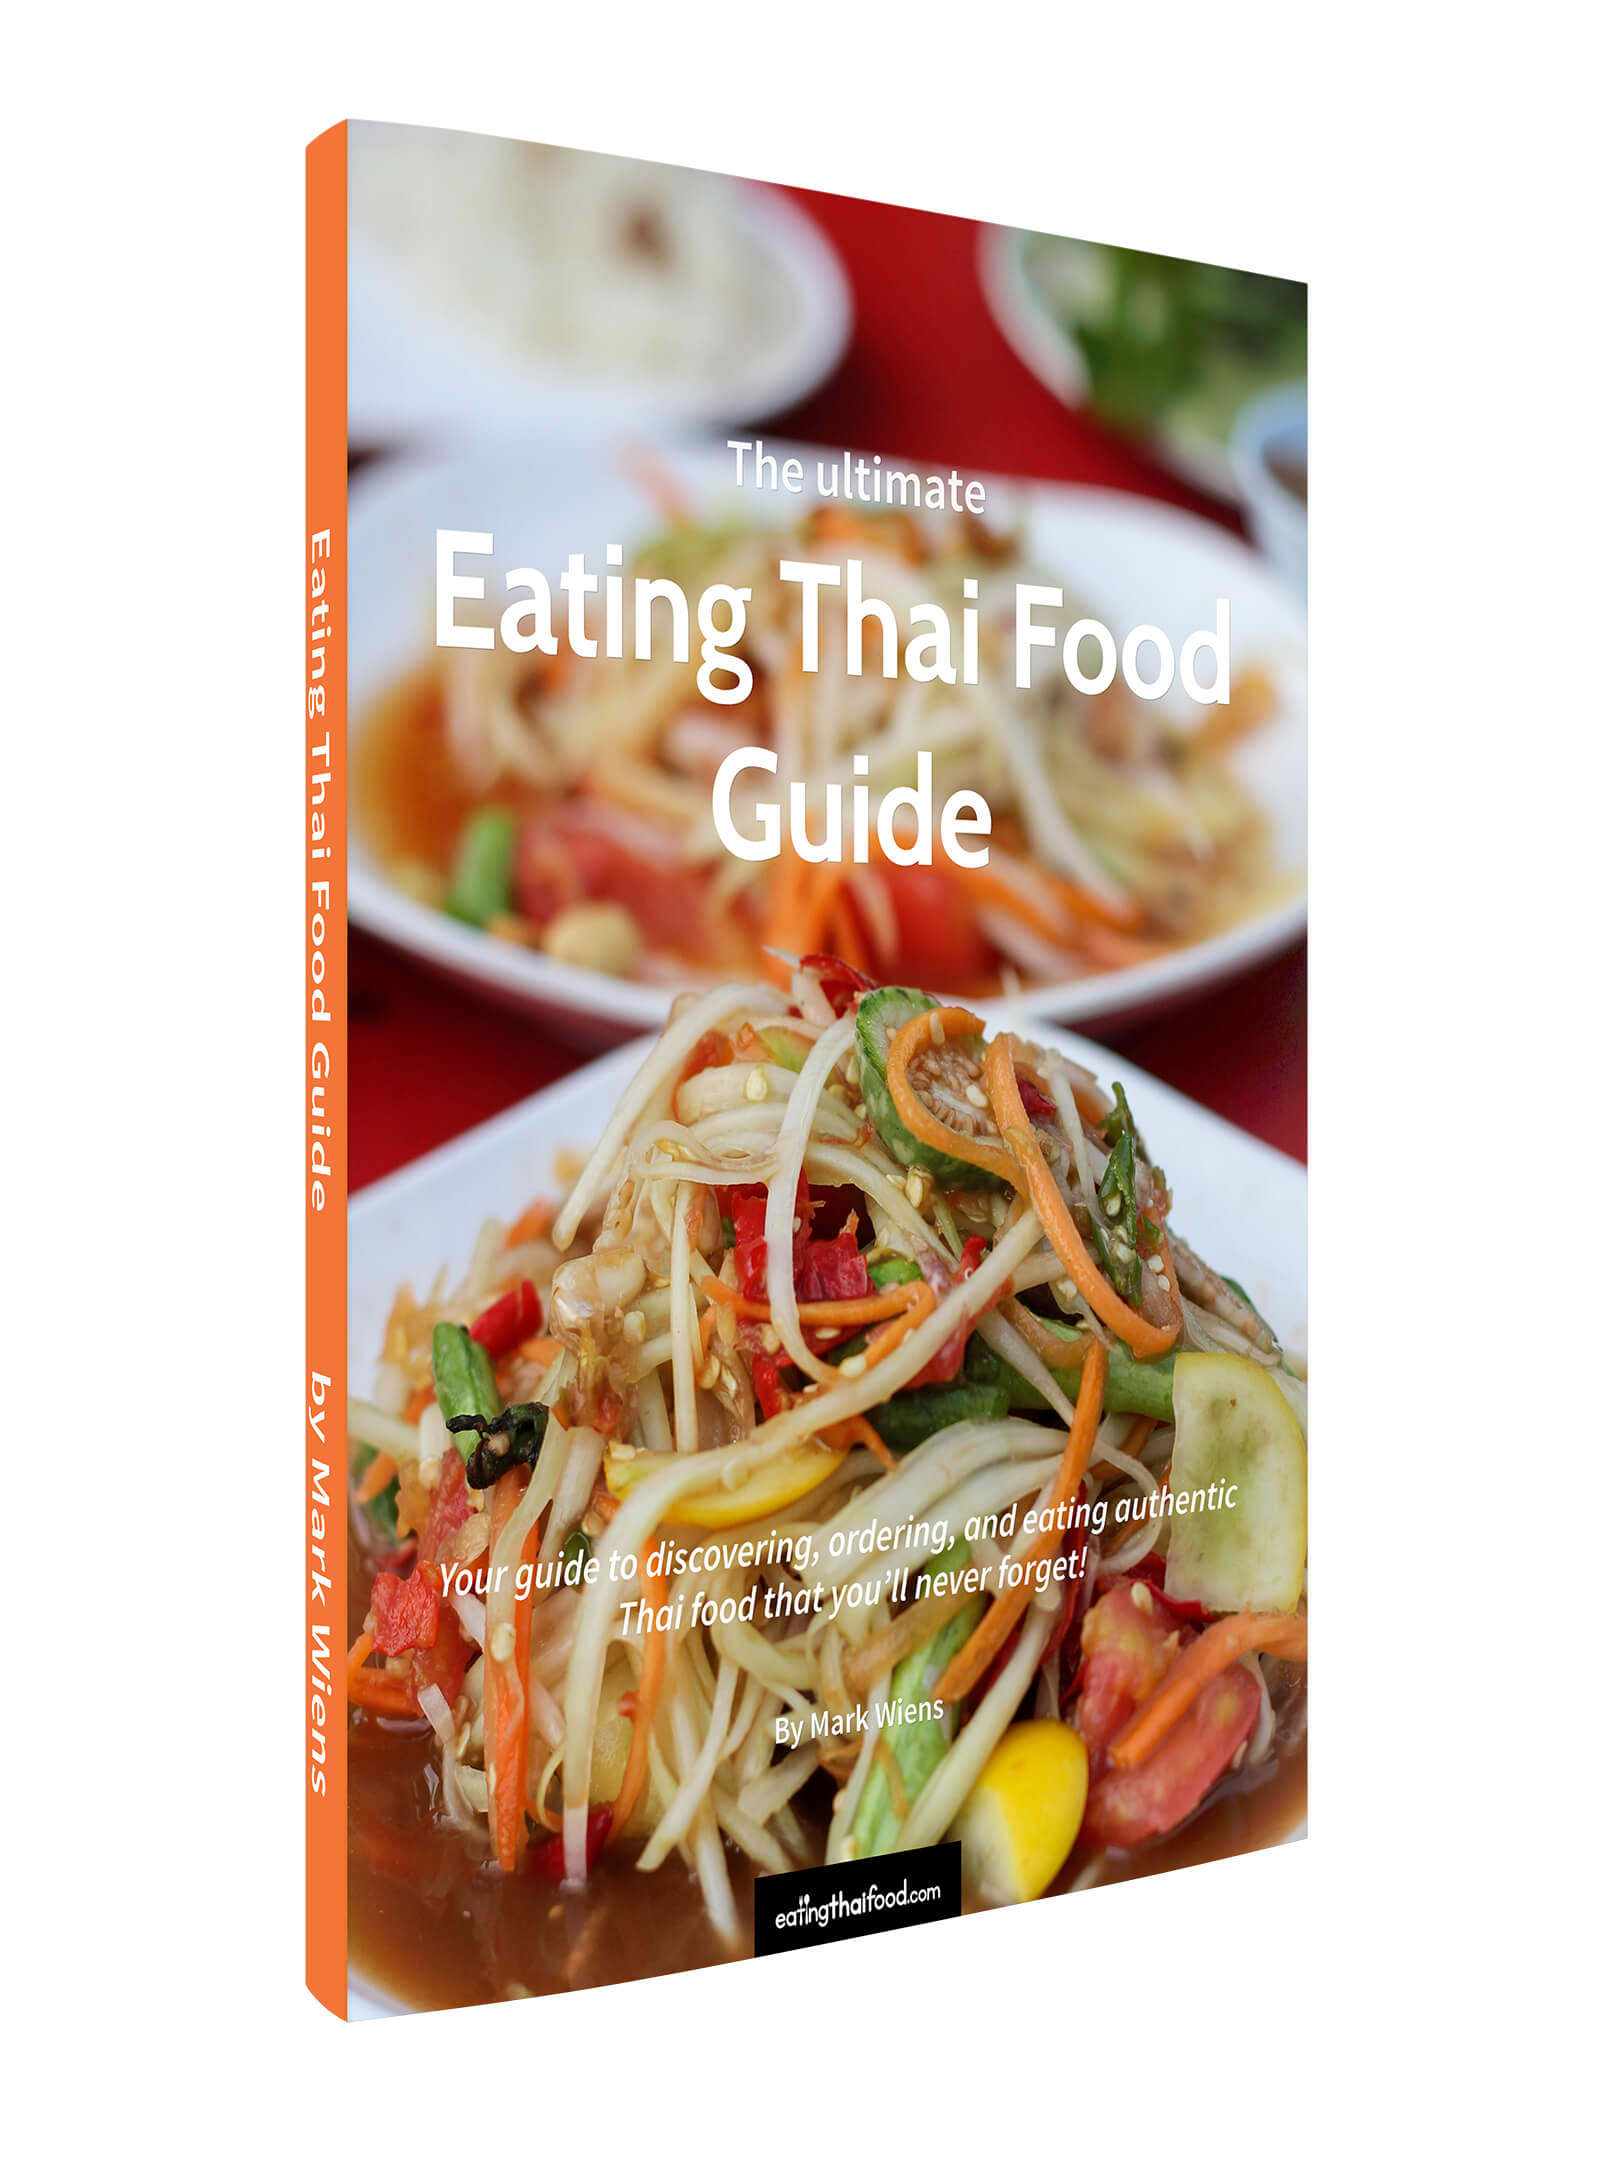 Eating thai food guide thai street food restaurants and eating thai food guide forumfinder Choice Image